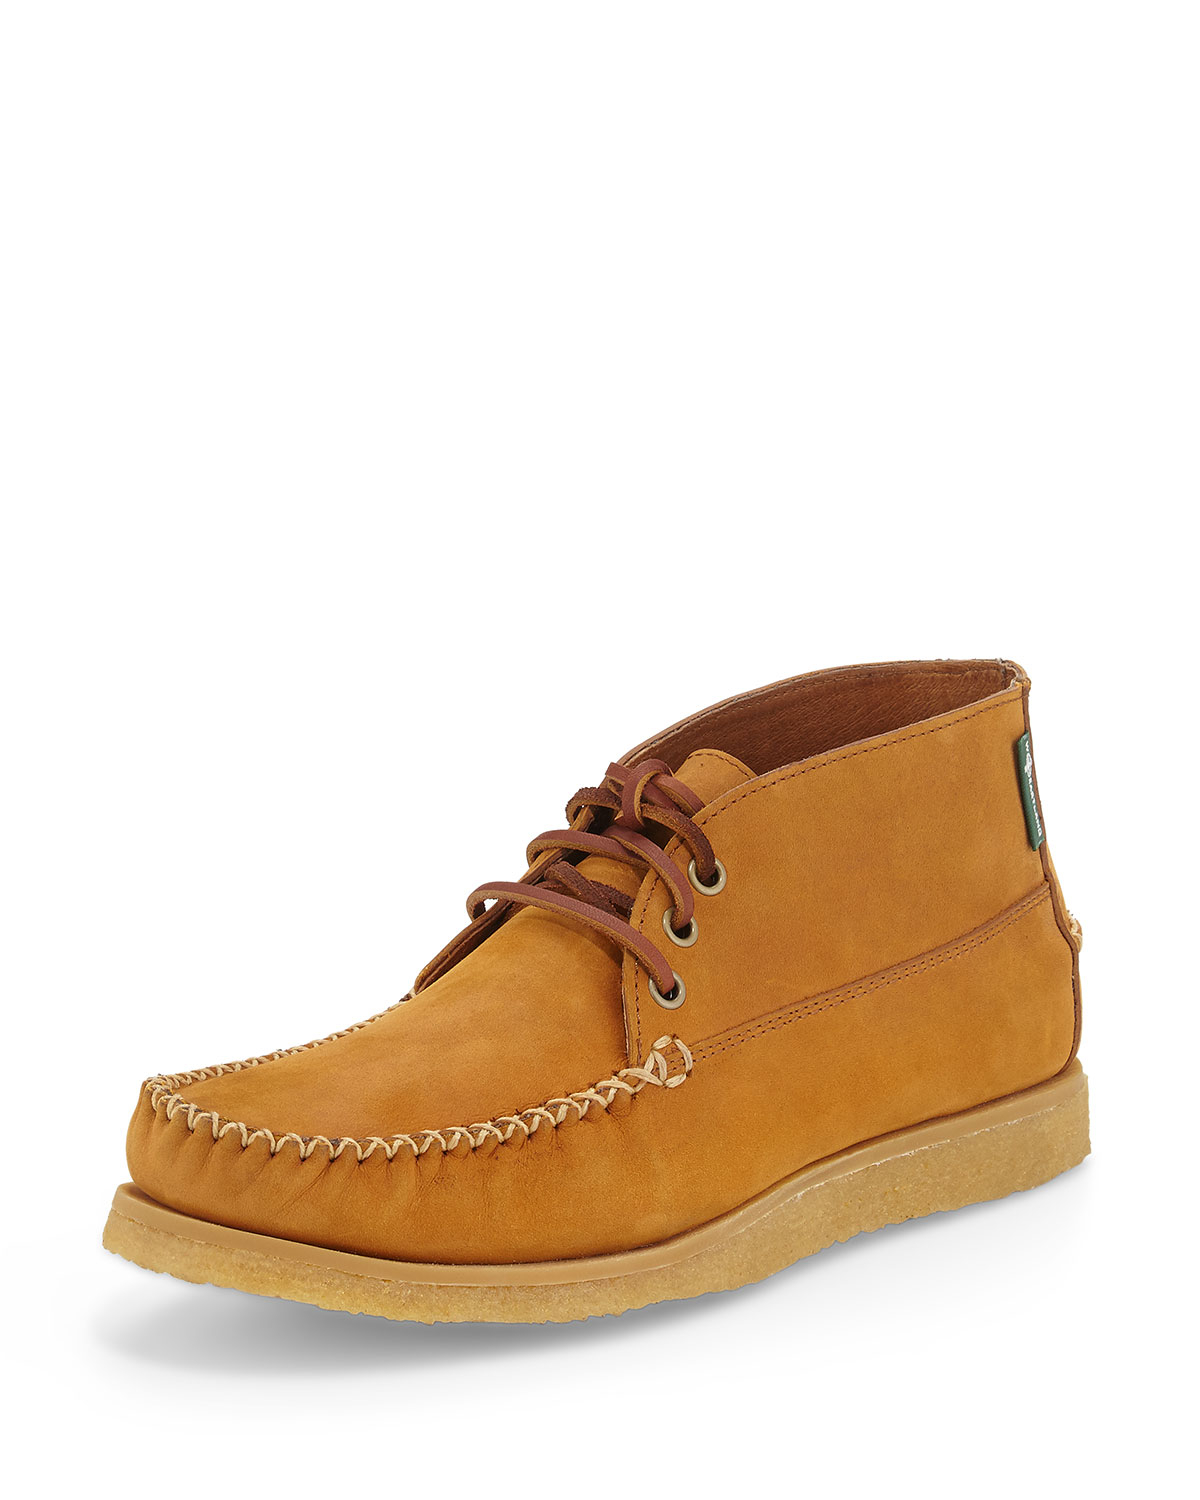 Where To Buy Eastland Shoes